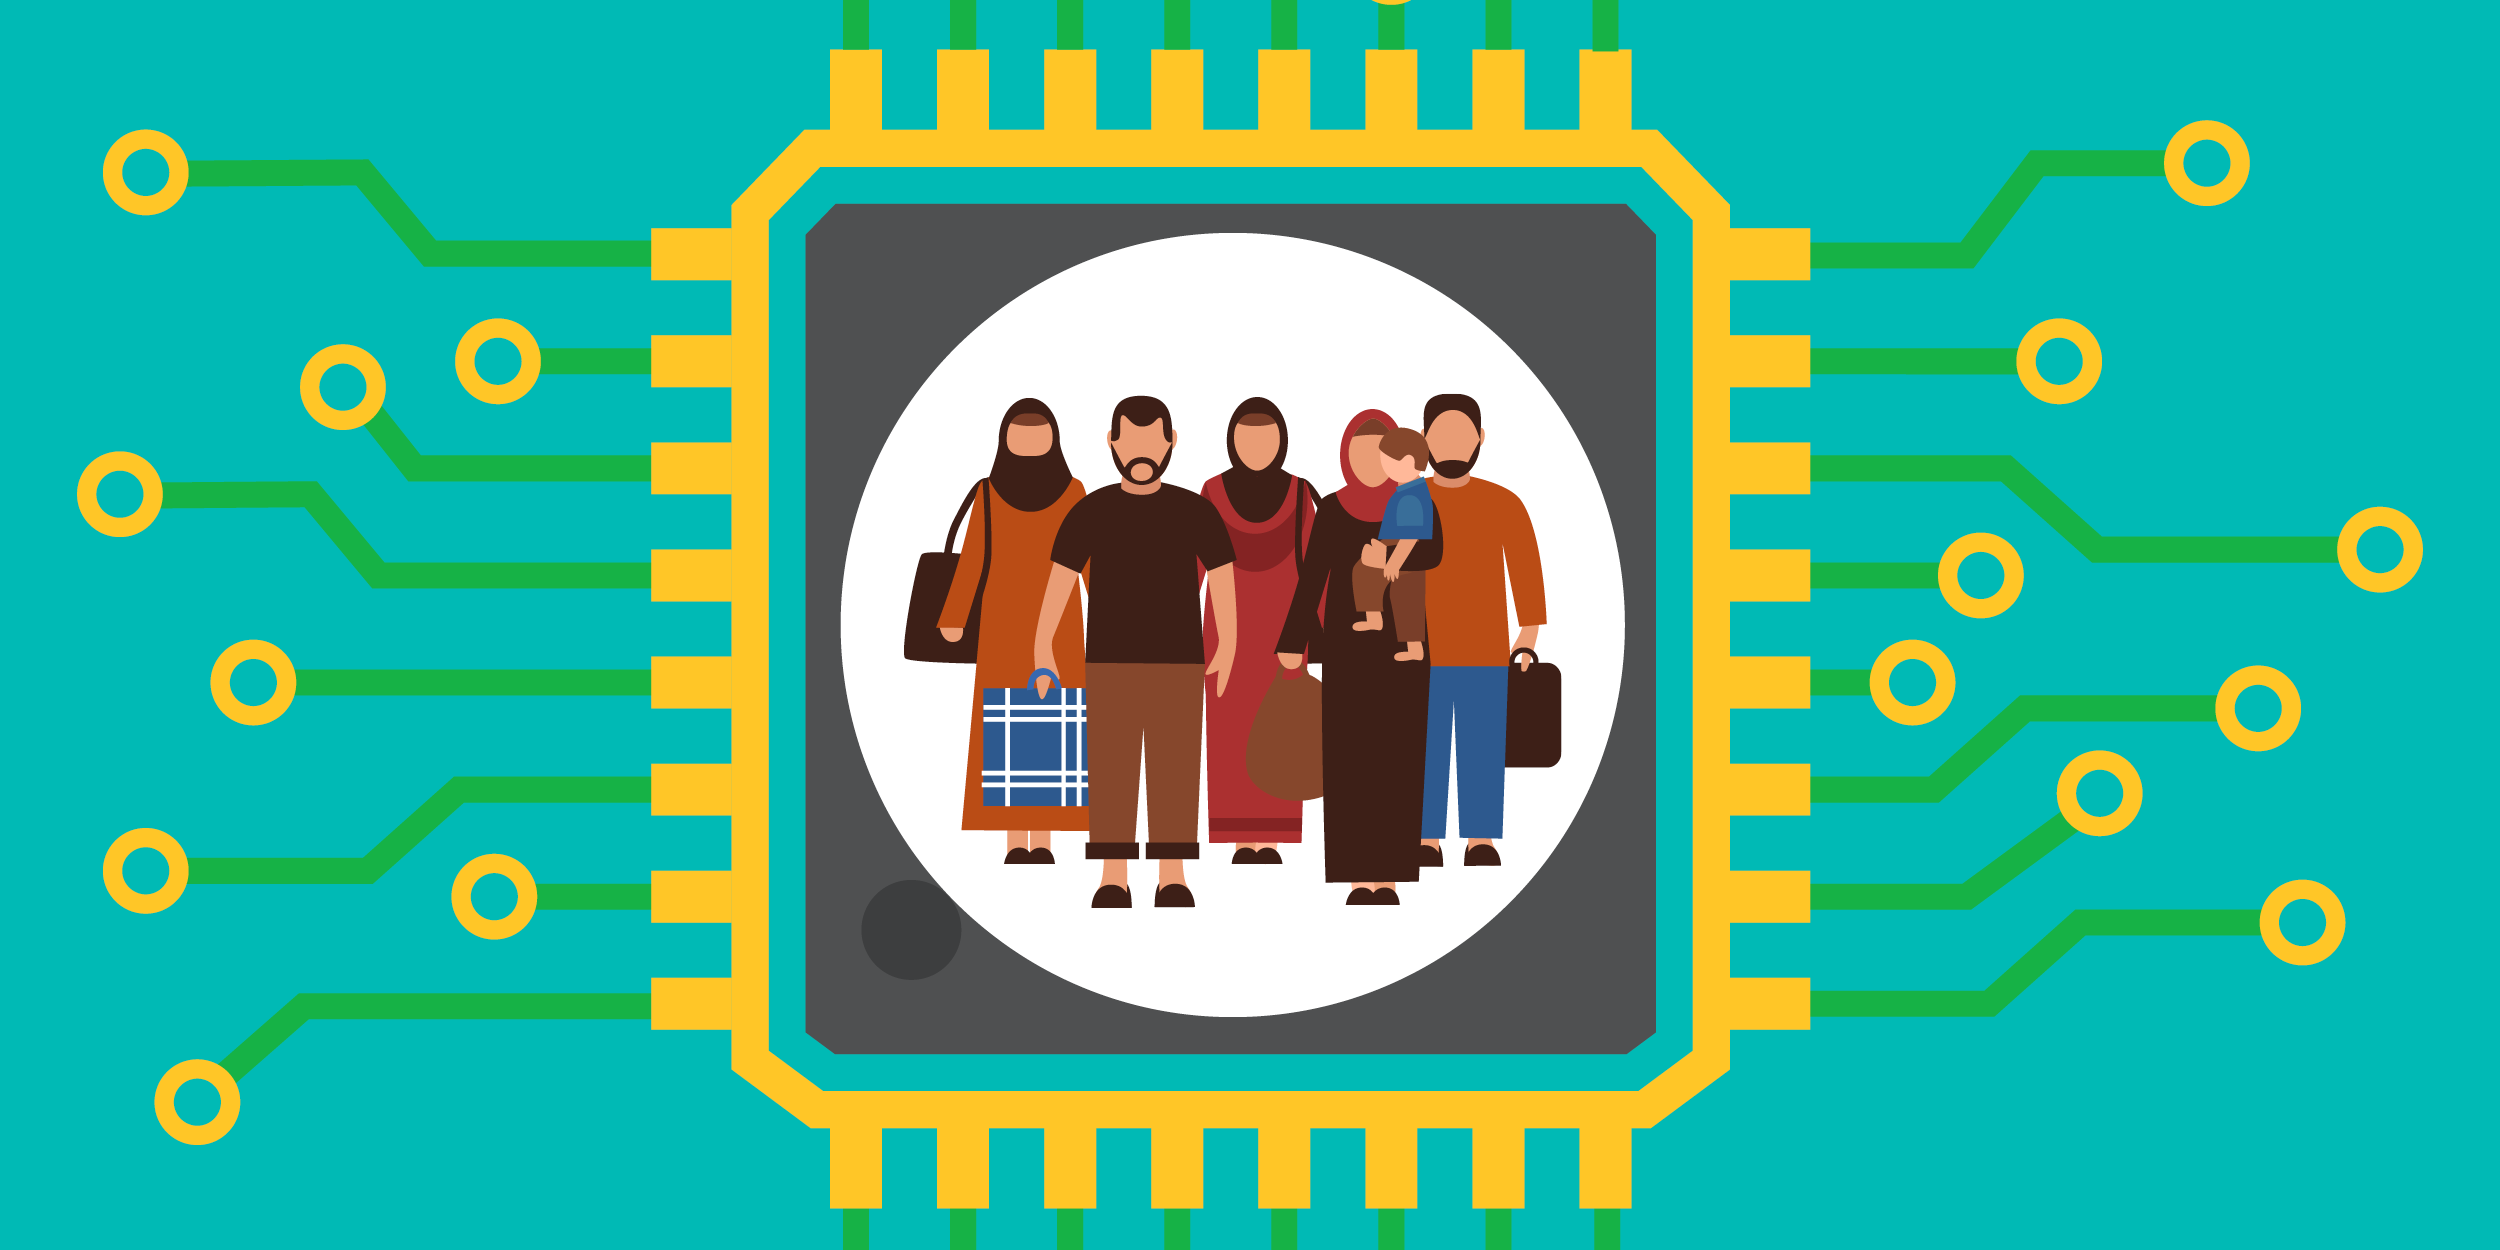 illustration of refugees being protected by a computer chip, symbolizing data security for nonprofits who work with refugees